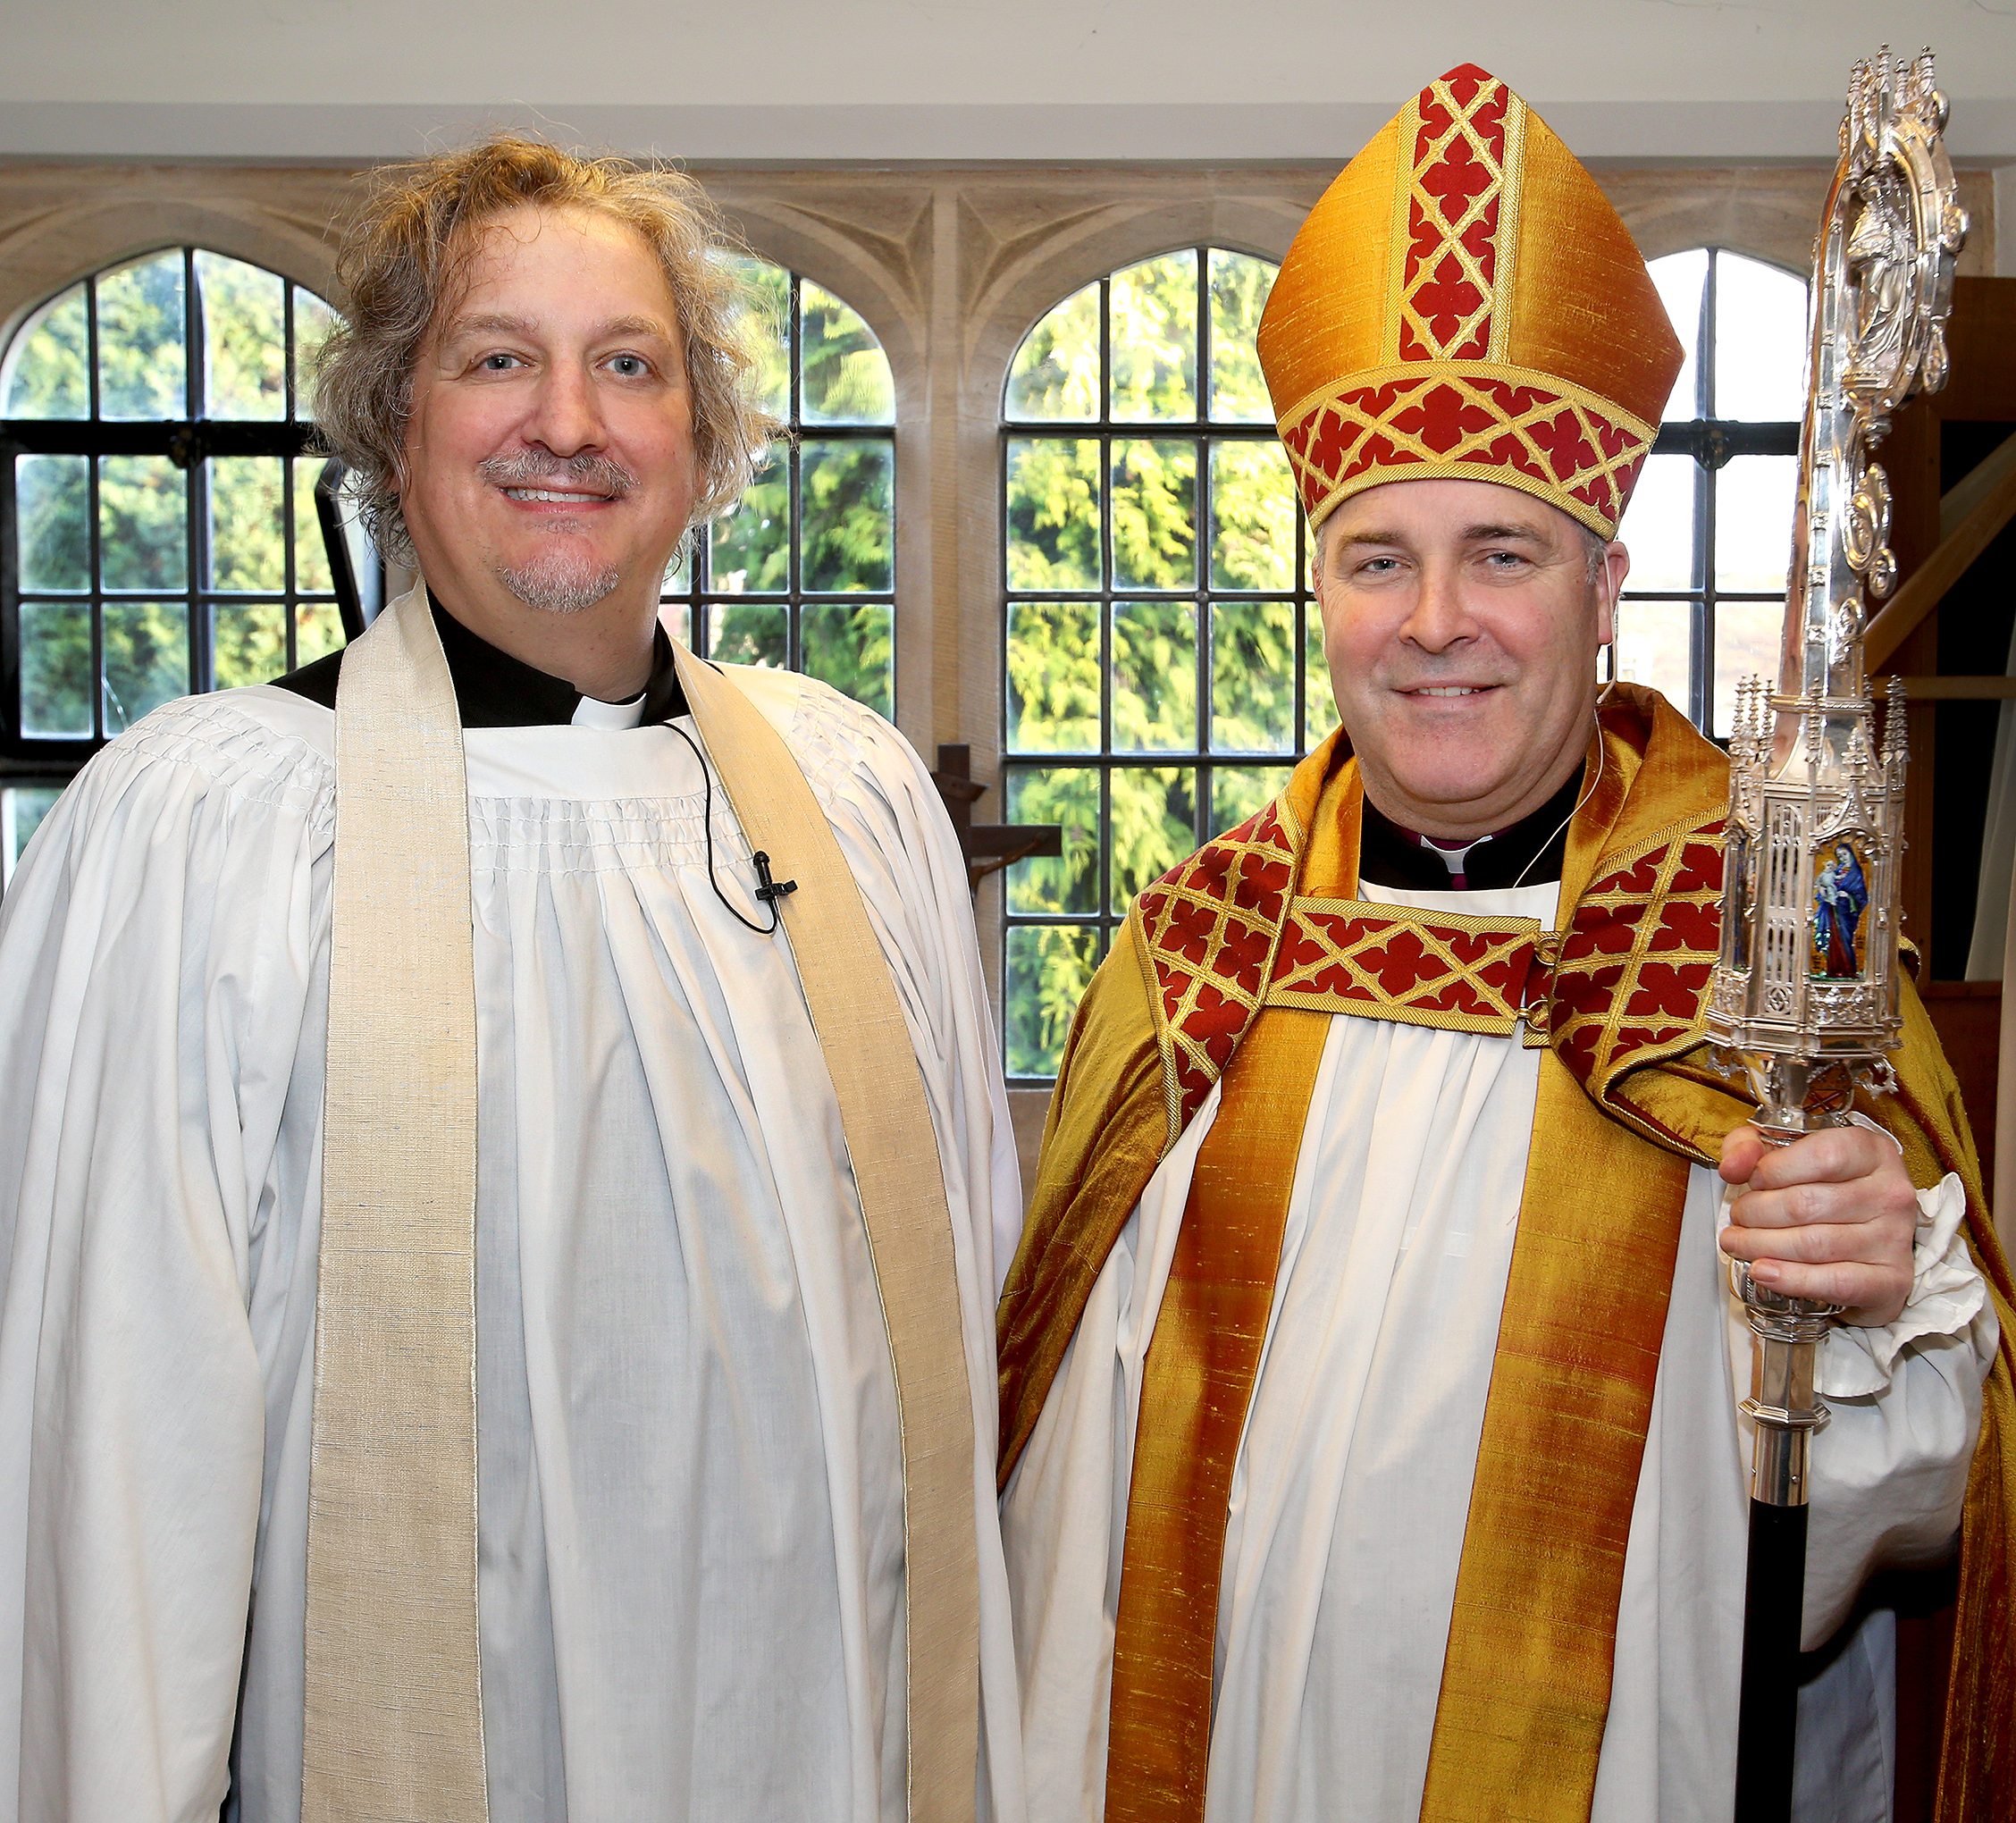 The Dean of Chelmsford, Nicholas Henshall and the Bishop of Chelmsford, Stephen Cottrell